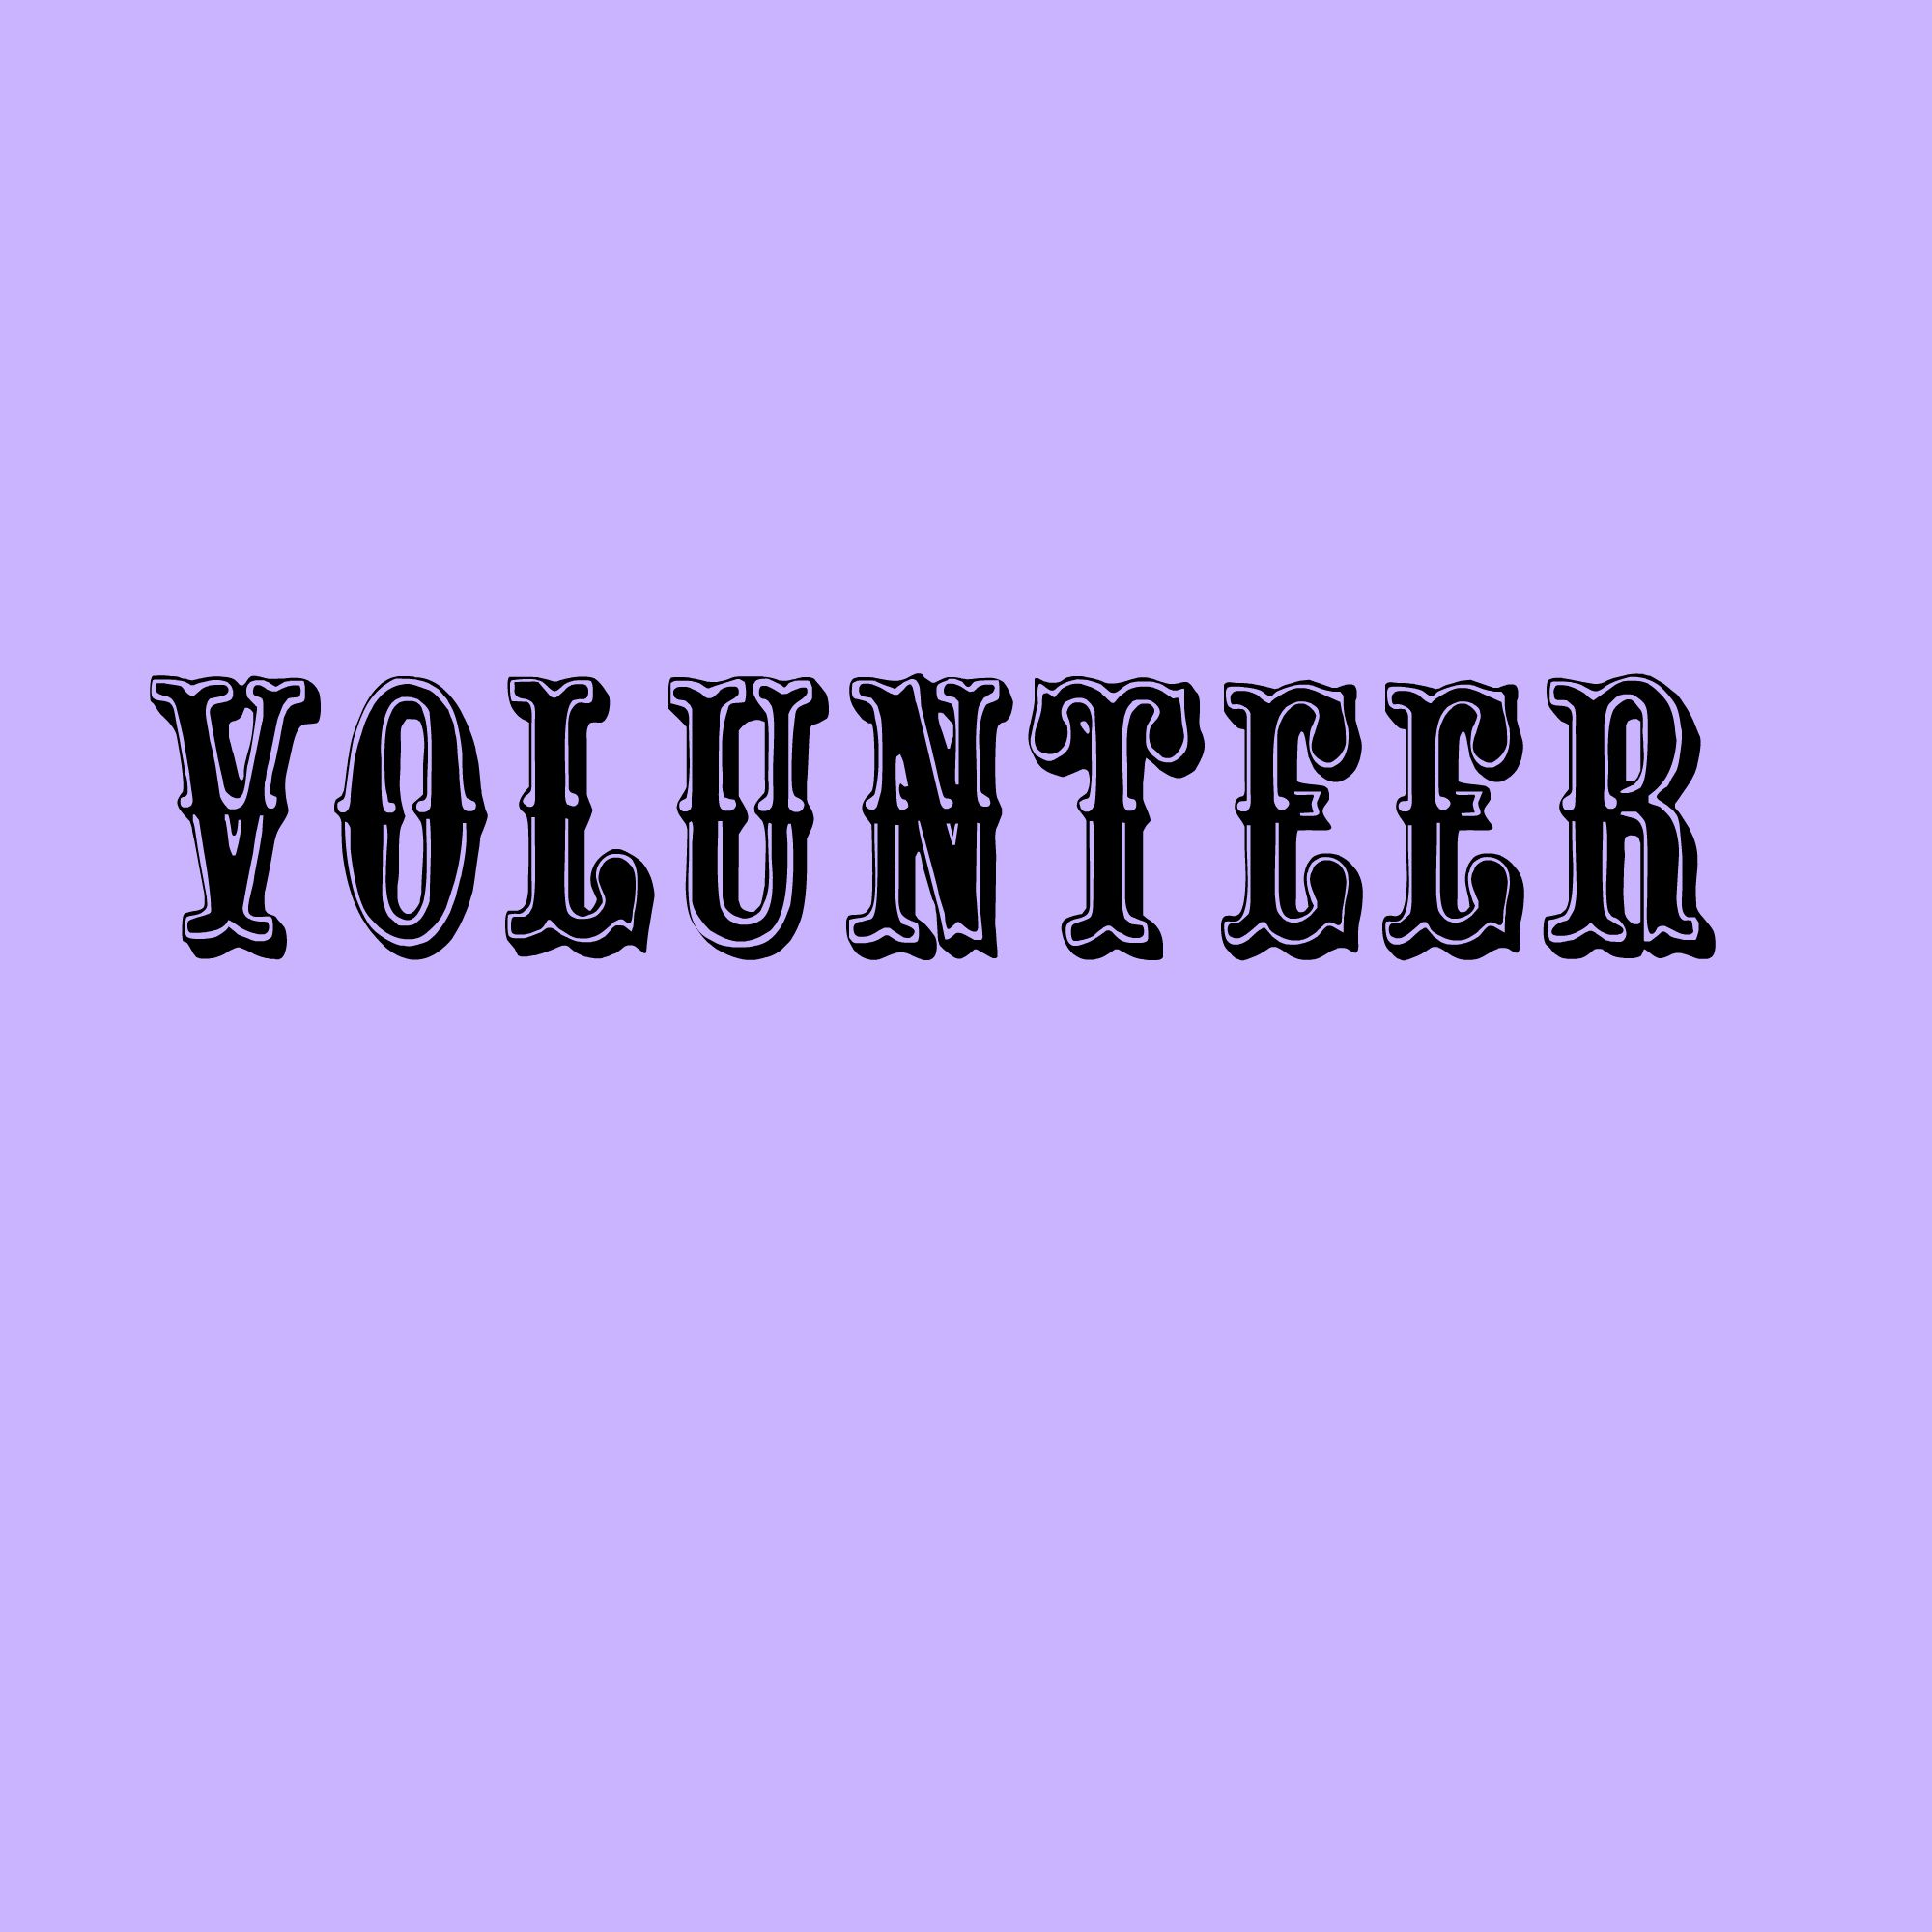 Soup Kitchen Volunteer Nj: NY Foodie Family